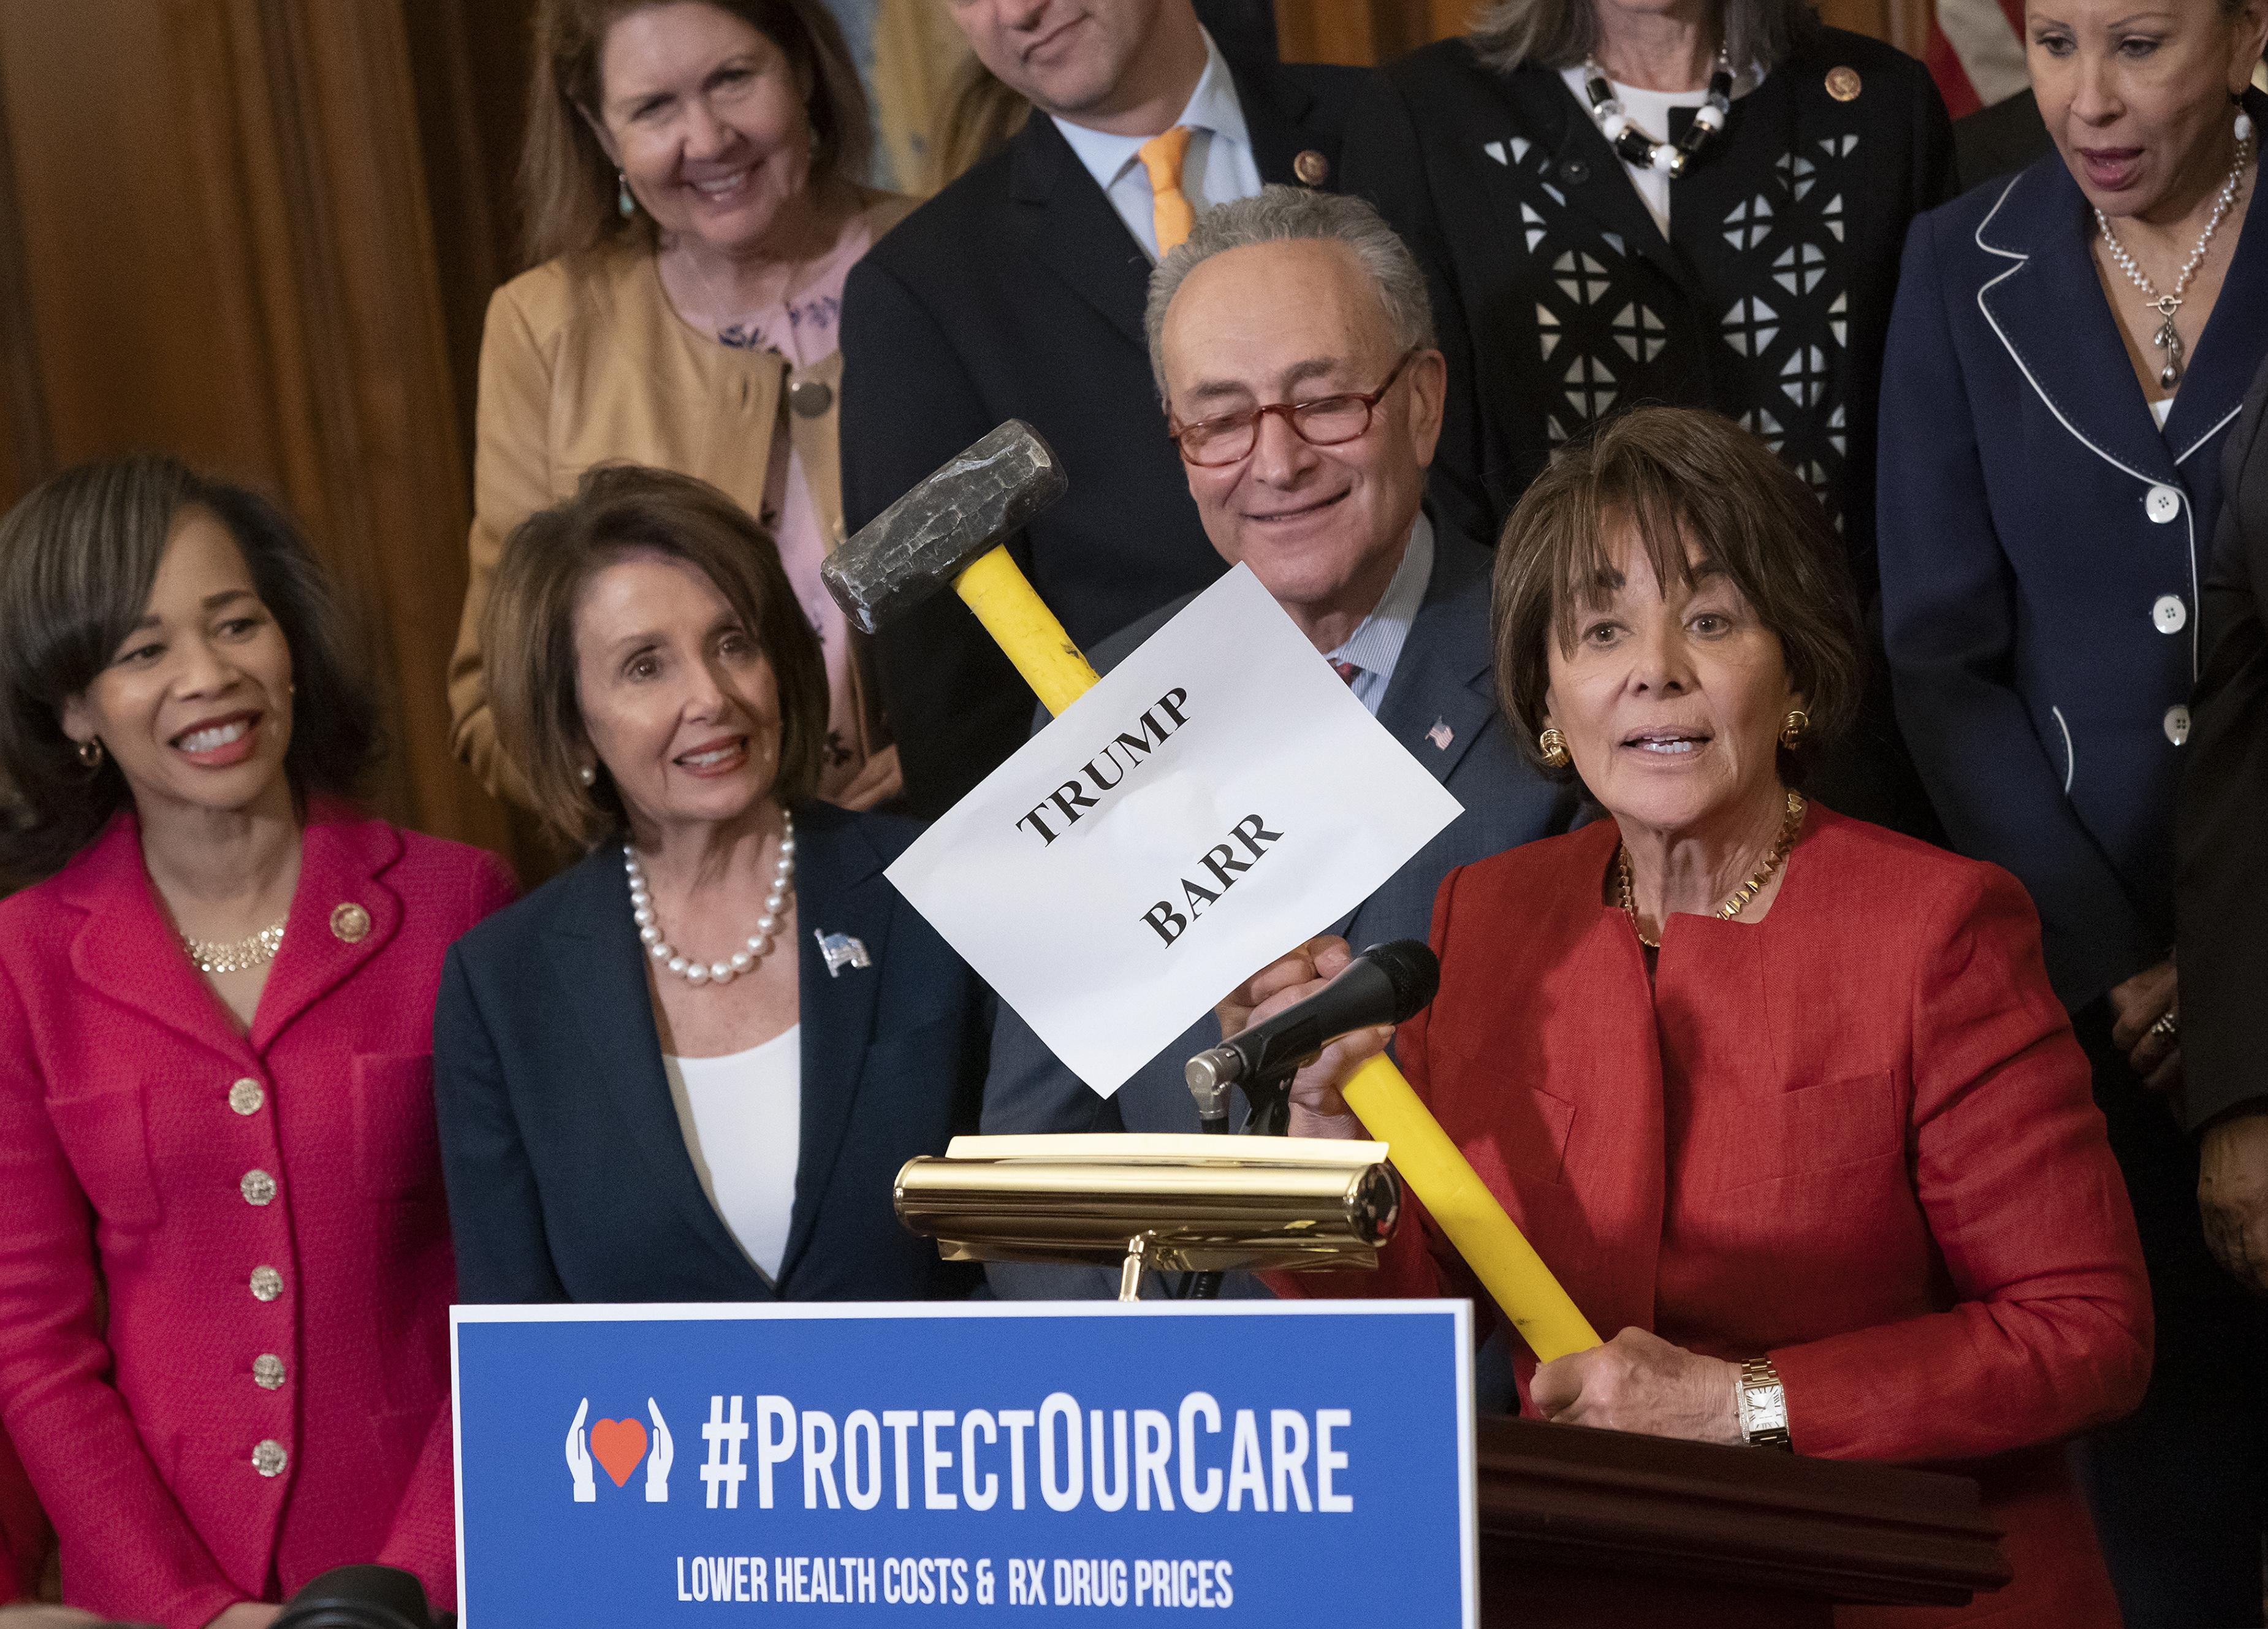 New Health Care Bill 2020 House Democrats pass health bill, in 2020 election maneuver